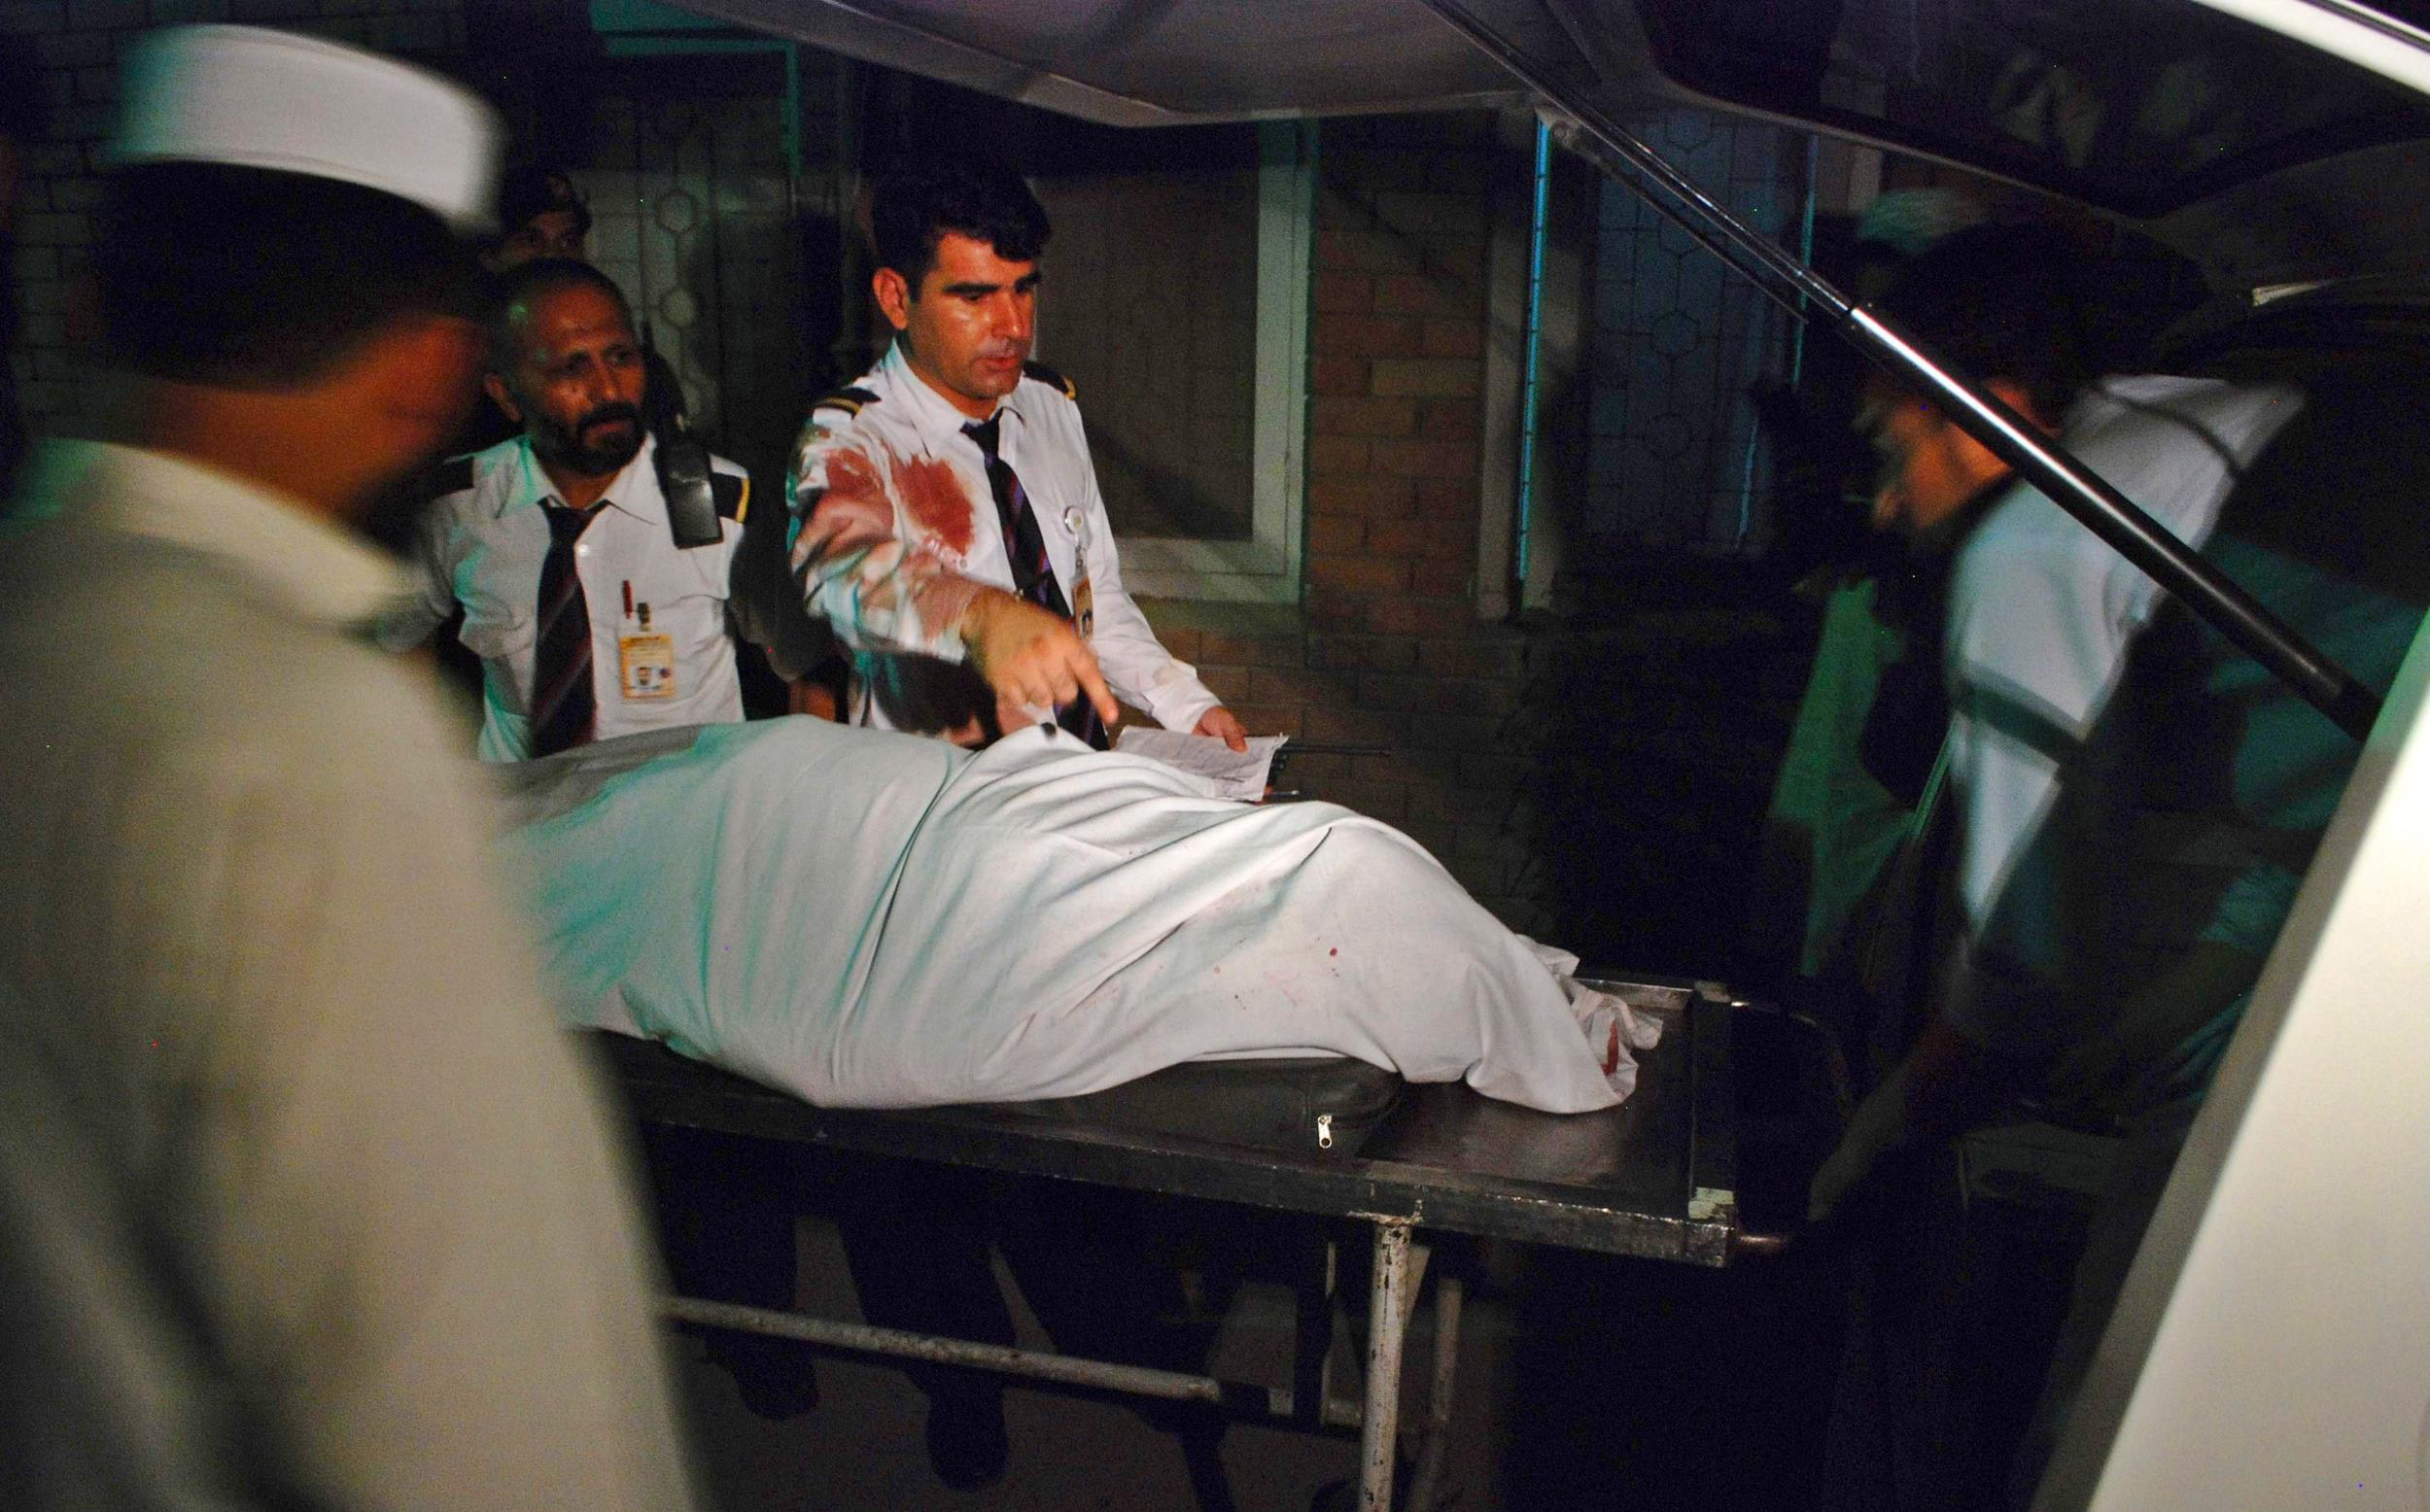 Image: Crew members of a PIA plane are seen beside the body of a woman who was killed on board their aircraft, at a hospital in Peshawar